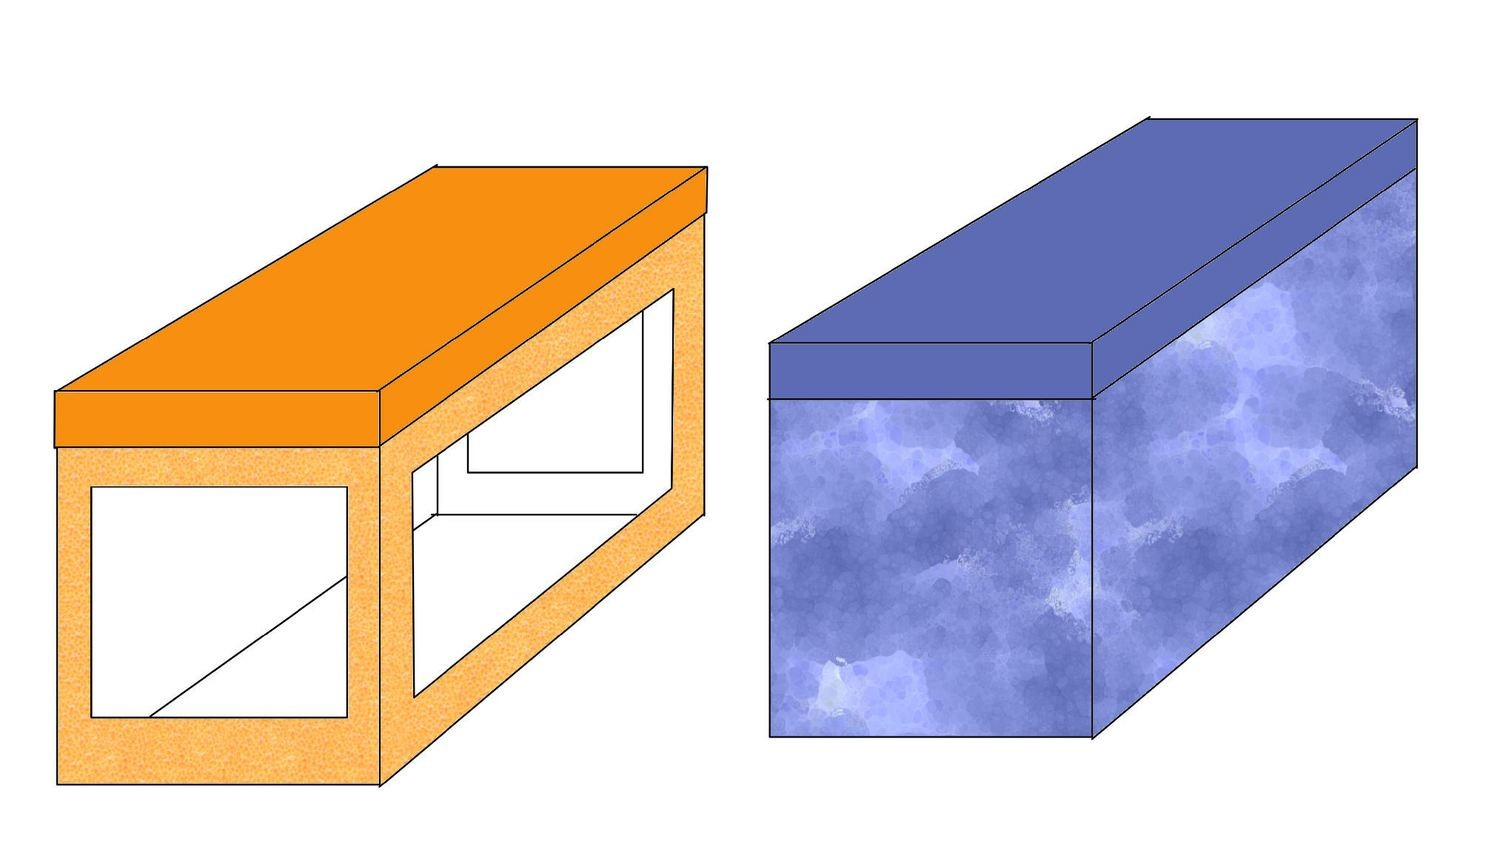 Boxes x 2 (with or without windows) 5h x 5d x 4w inches